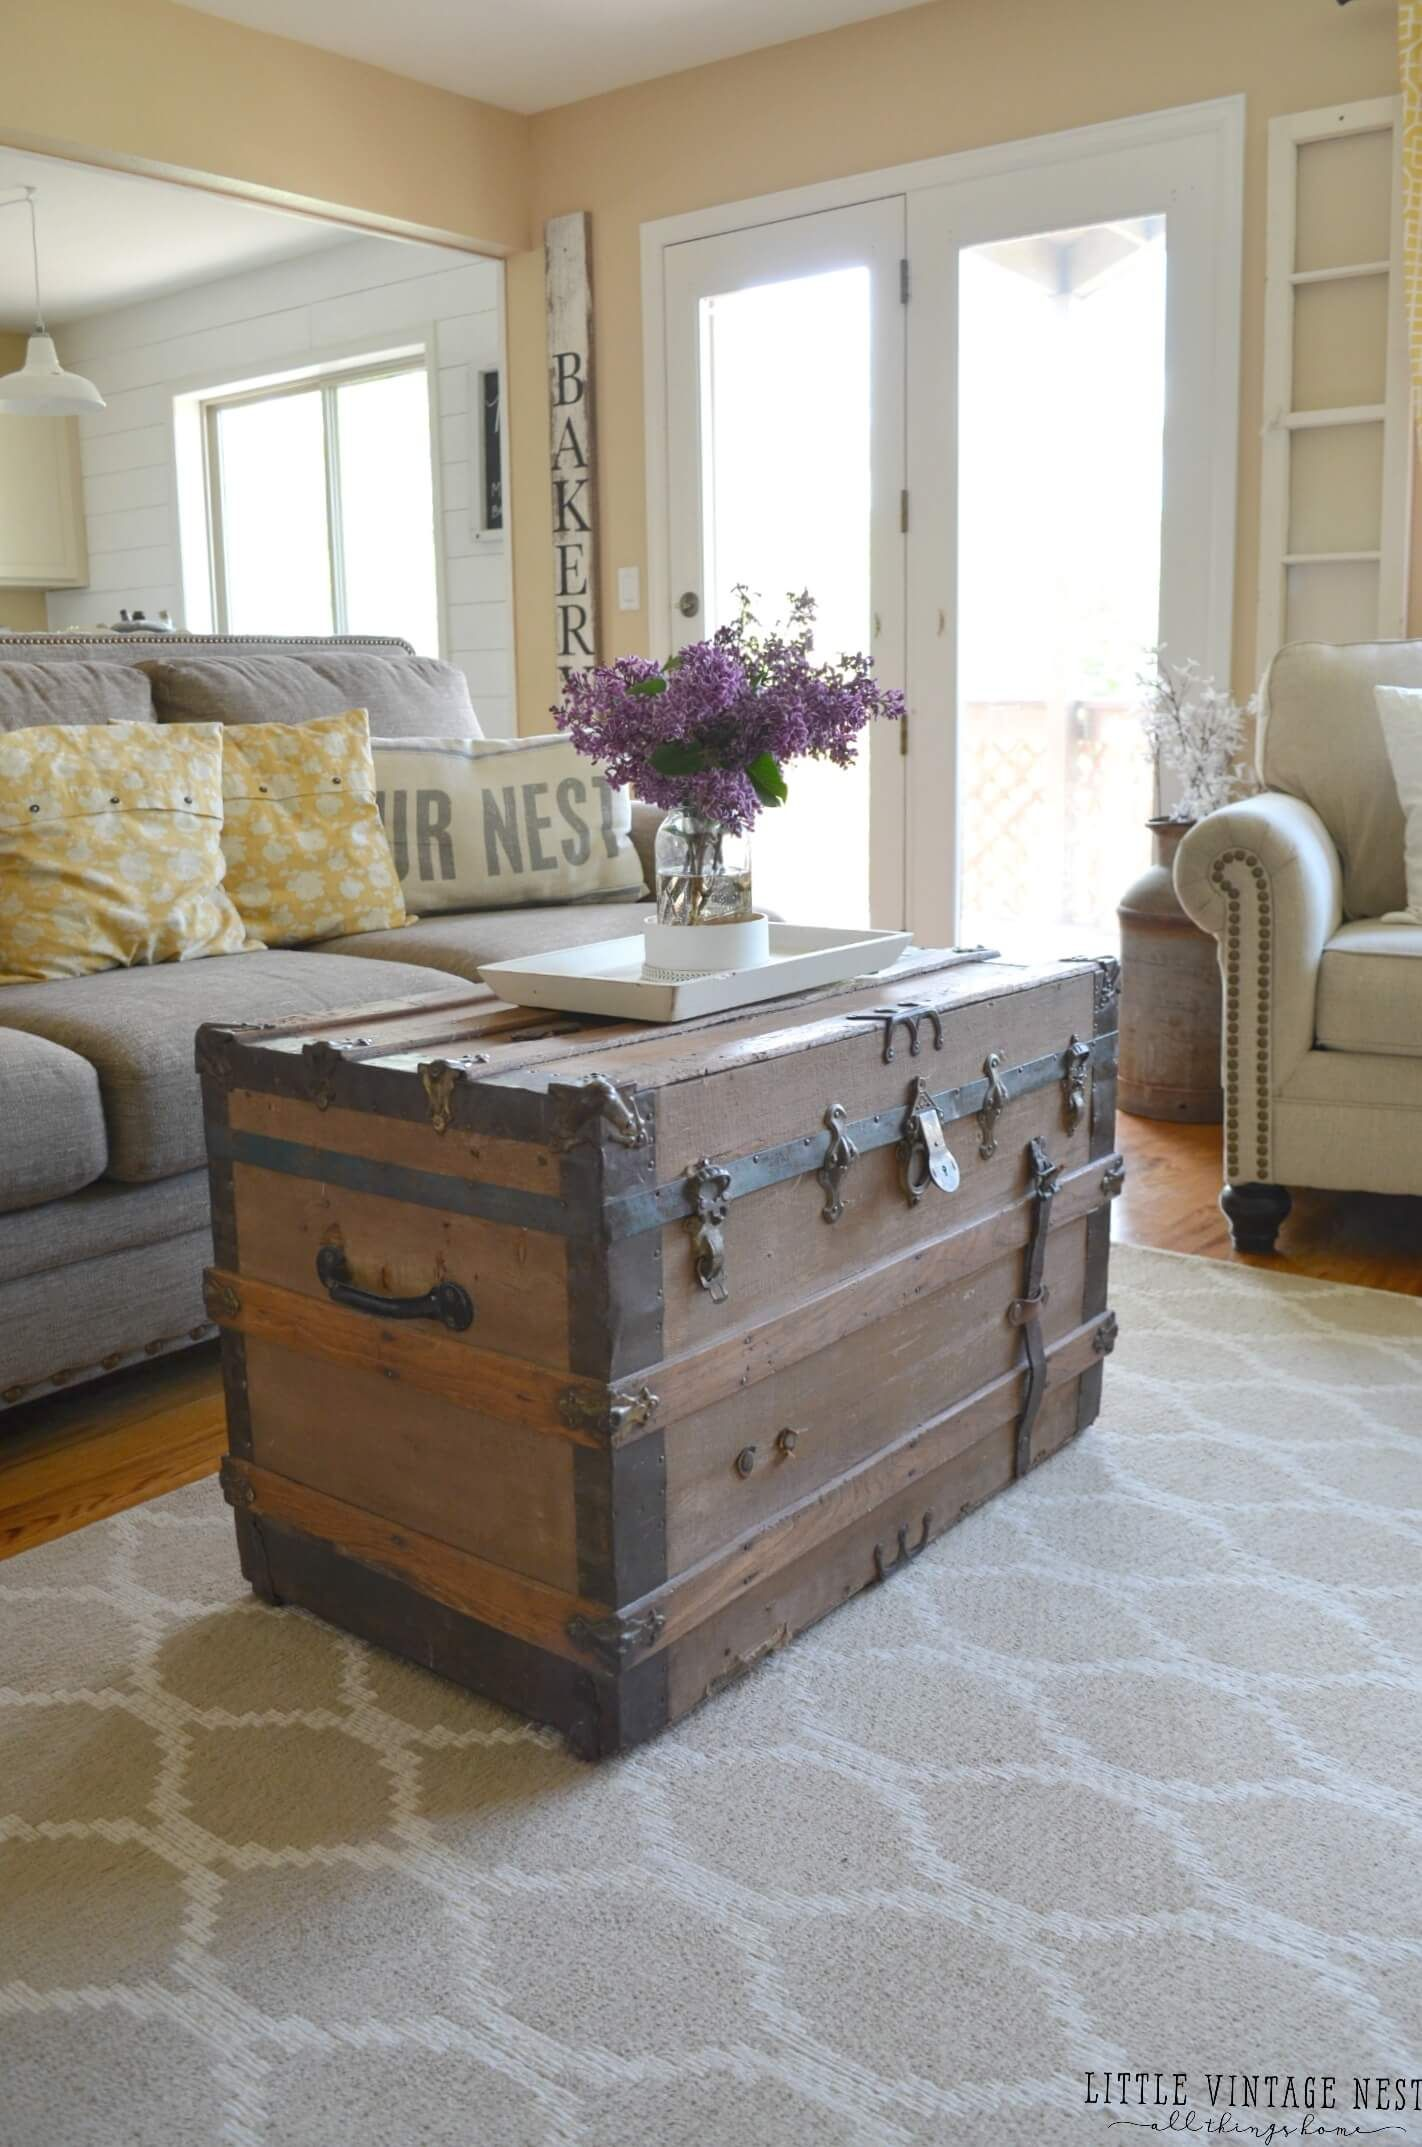 35 Rustic Farmhouse Living Room Design And Decor Ideas For Your Home Trunk